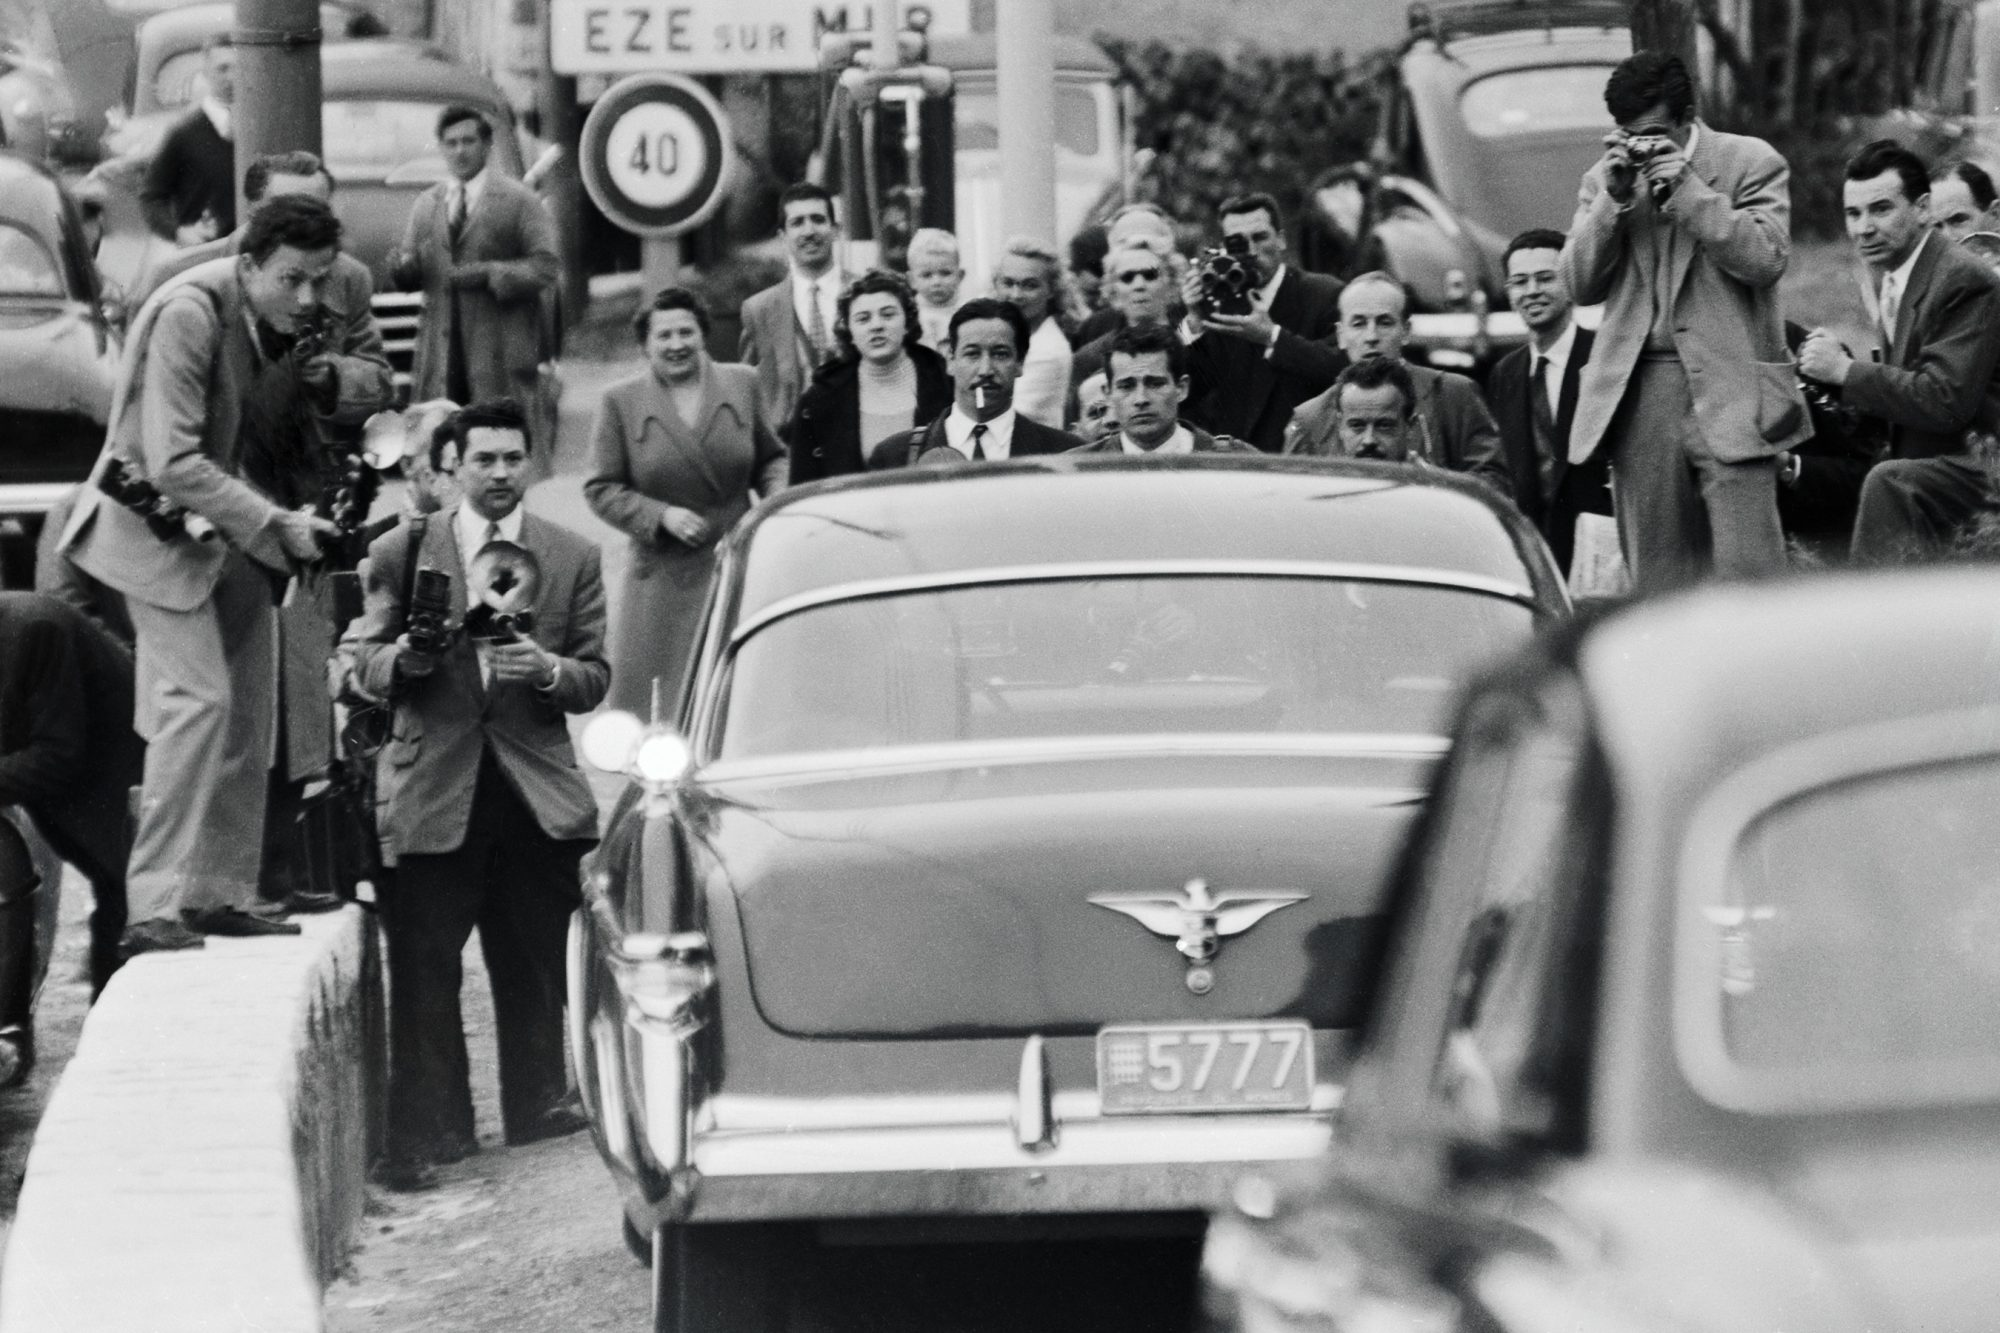 """(Original Caption) Photographers form a human barricade across a road in France in an attempt to photograph Prince Rainier III and Grace Kelly as they rode back to the principality. The incident occurred when the Prince was driving Miss Kelly back from a luncheon in Cap Ferrat. After the couple returned to the palace, Rainier's press chief denounced the photographers' activities as """"intolerable,"""" and all press photographers were barred from the April 18th civil wedding because of the incident."""